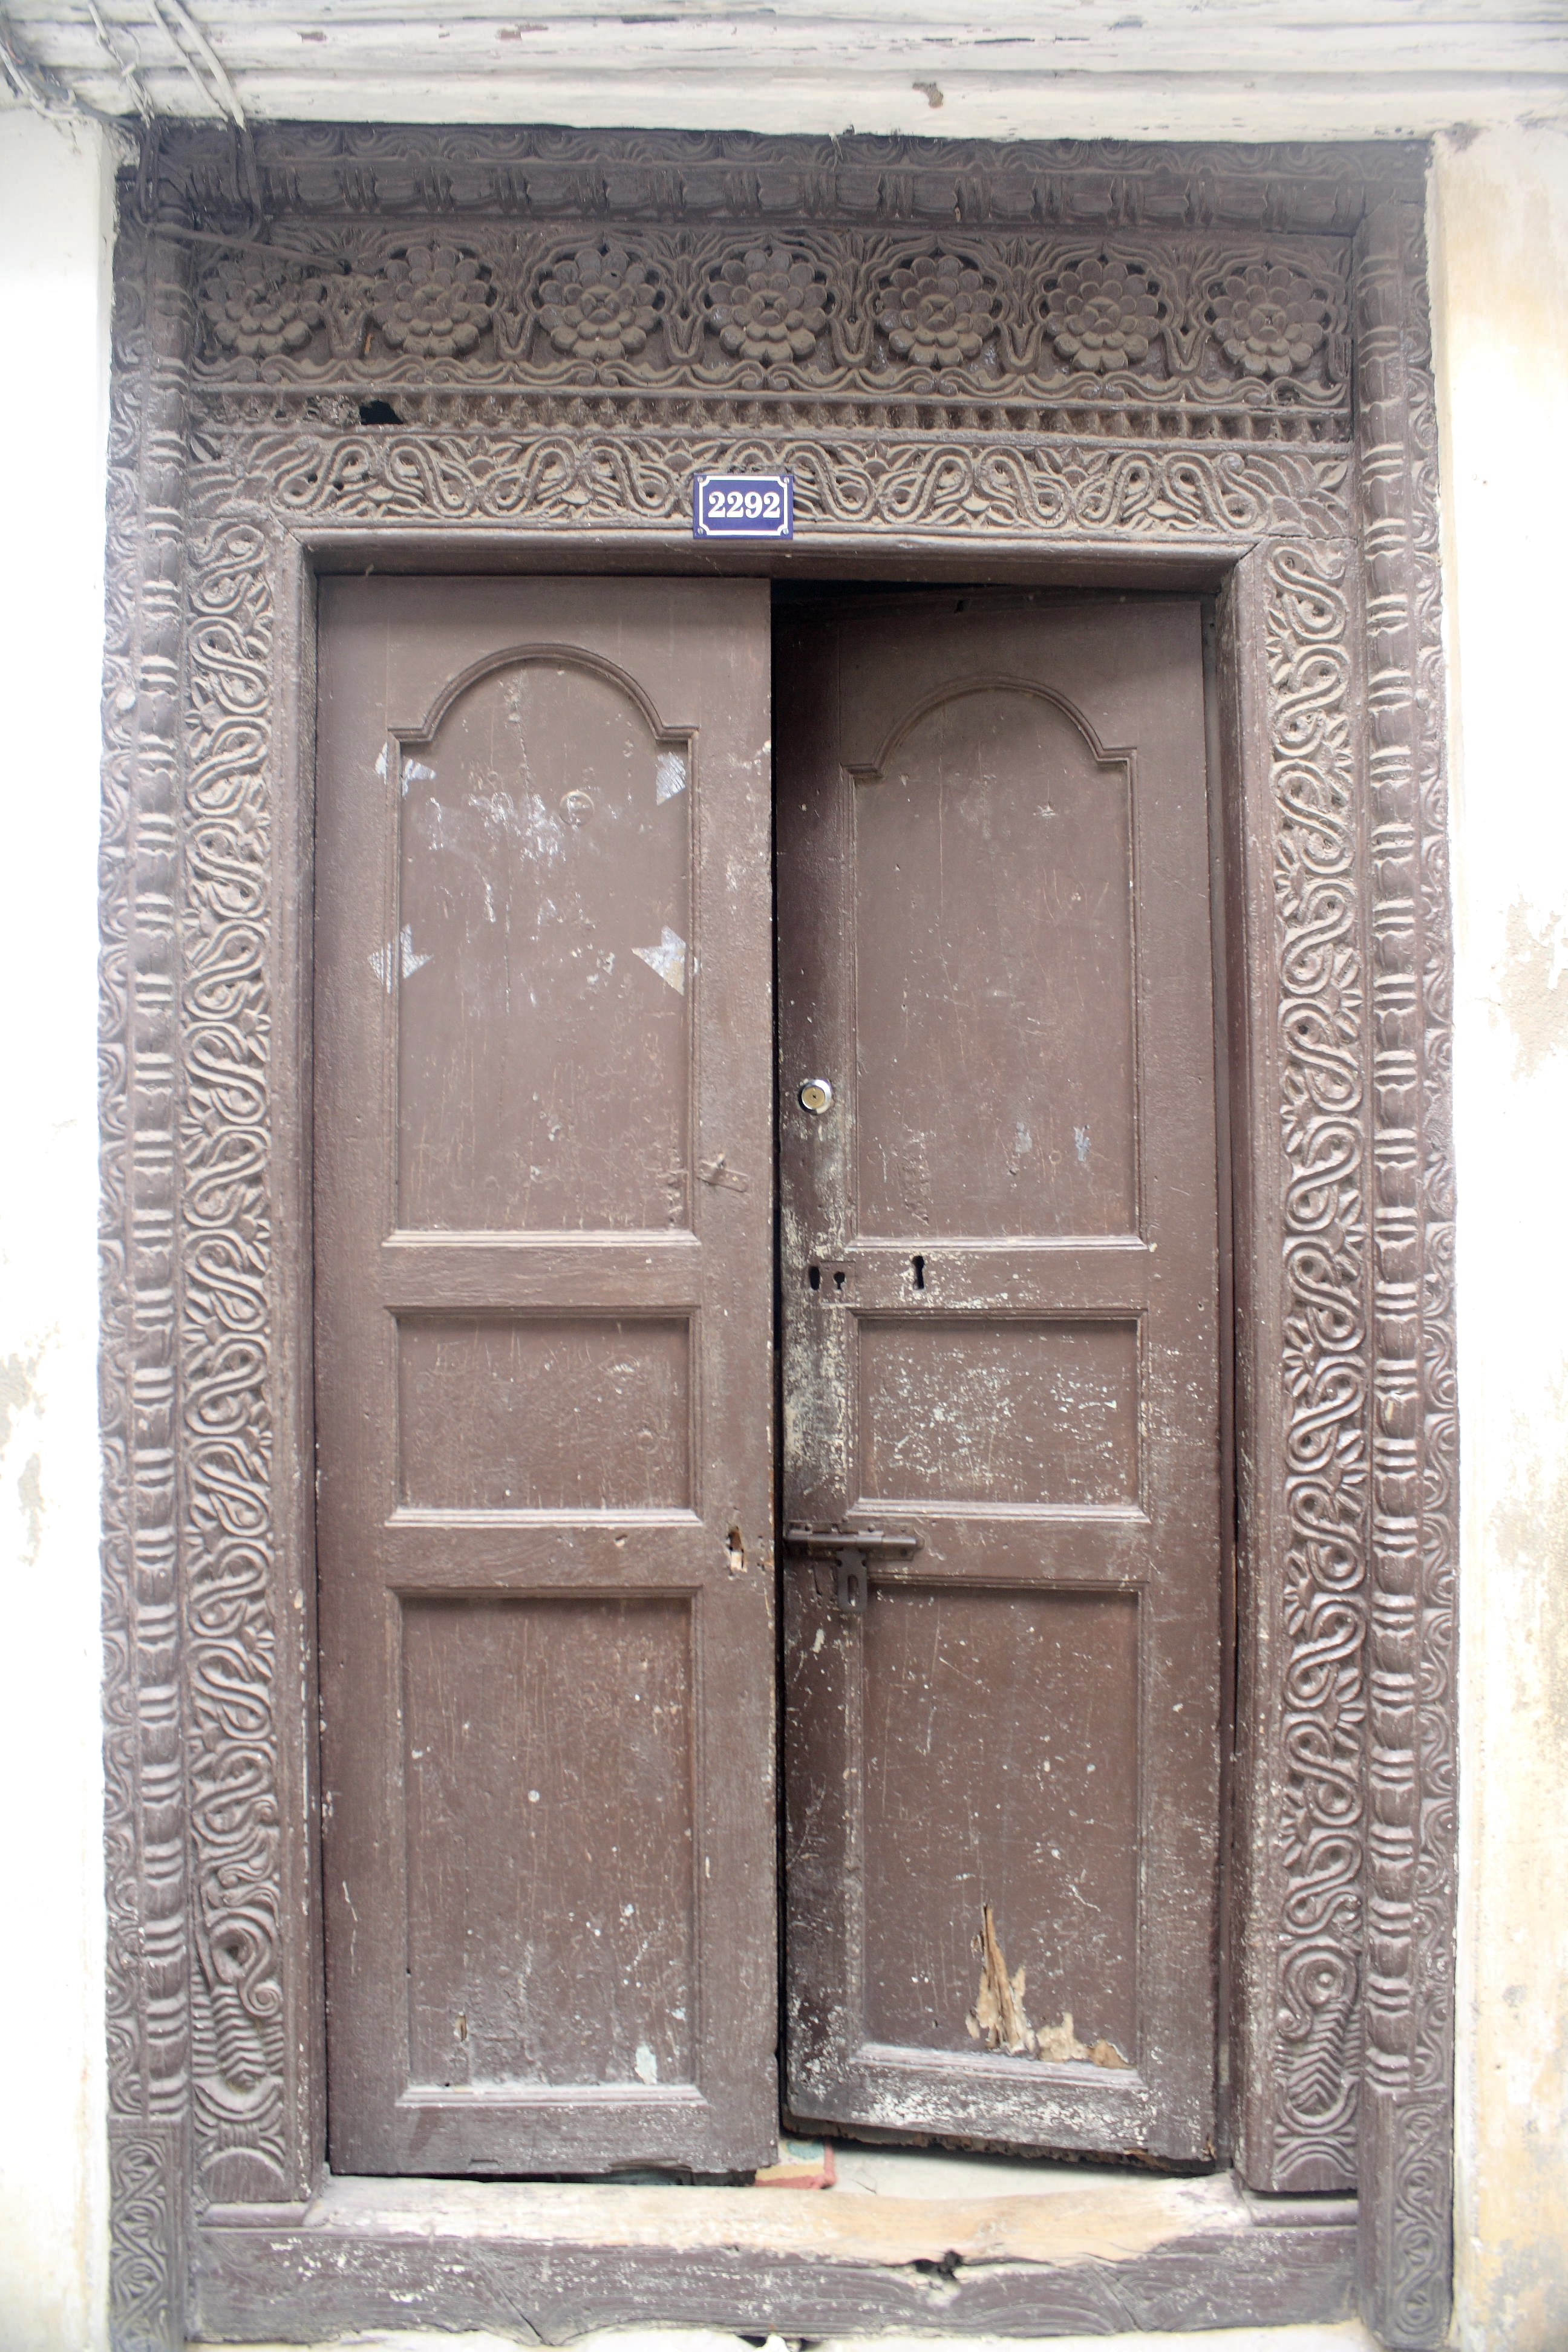 A wooden zanzibar door with one half open